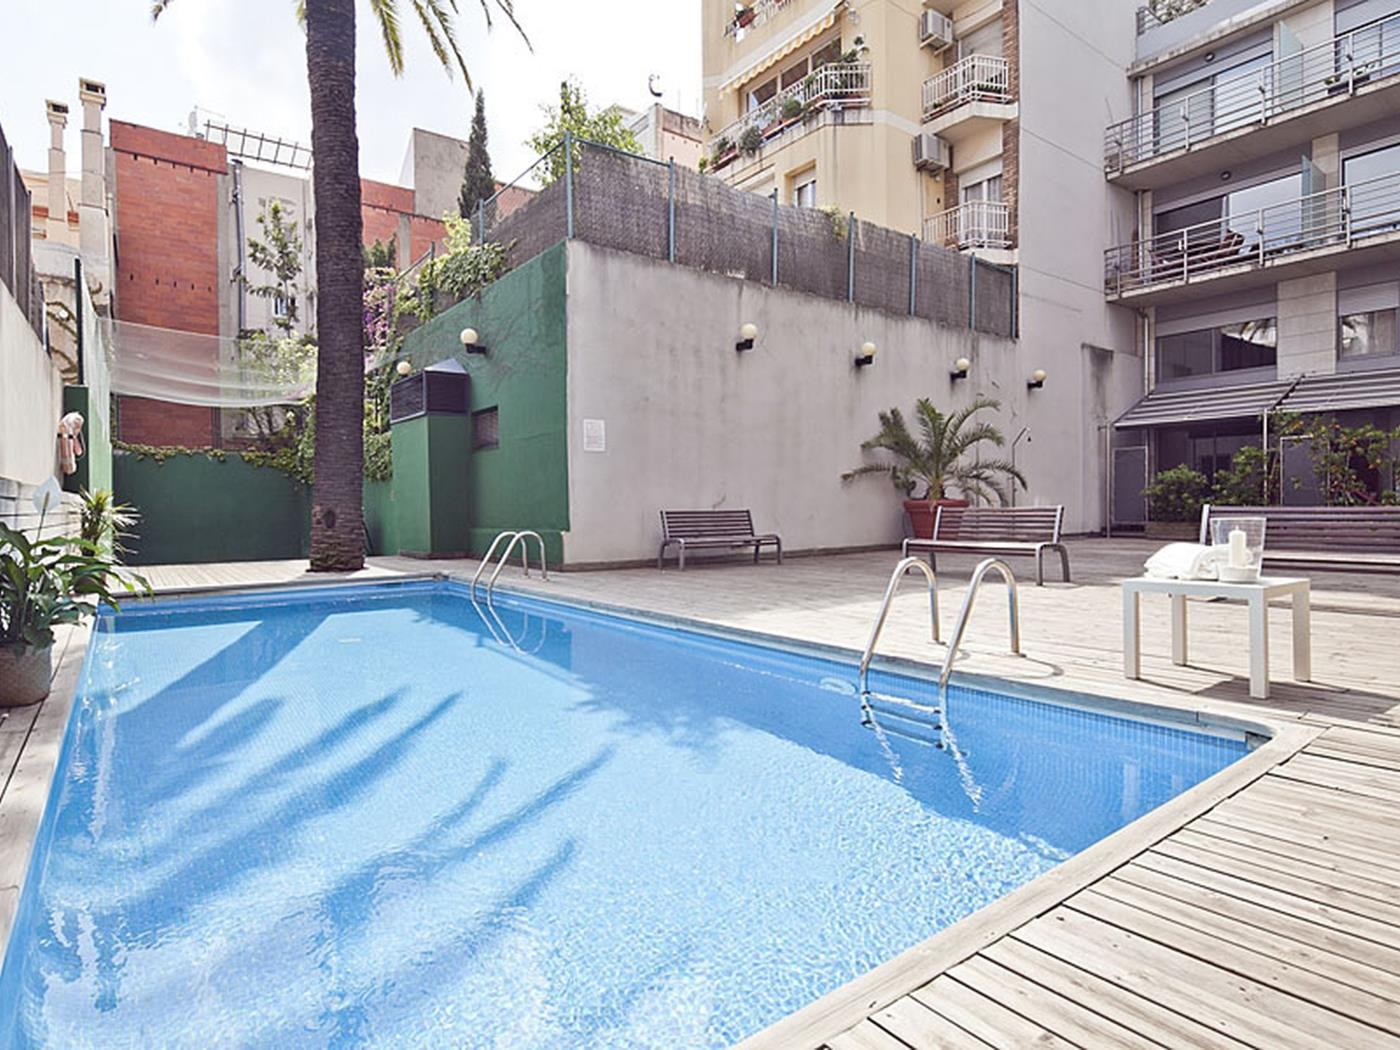 Apartments for rent for Erasmus very close to the centre of Barcelona wt terrace - My Space Barcelona Apartments